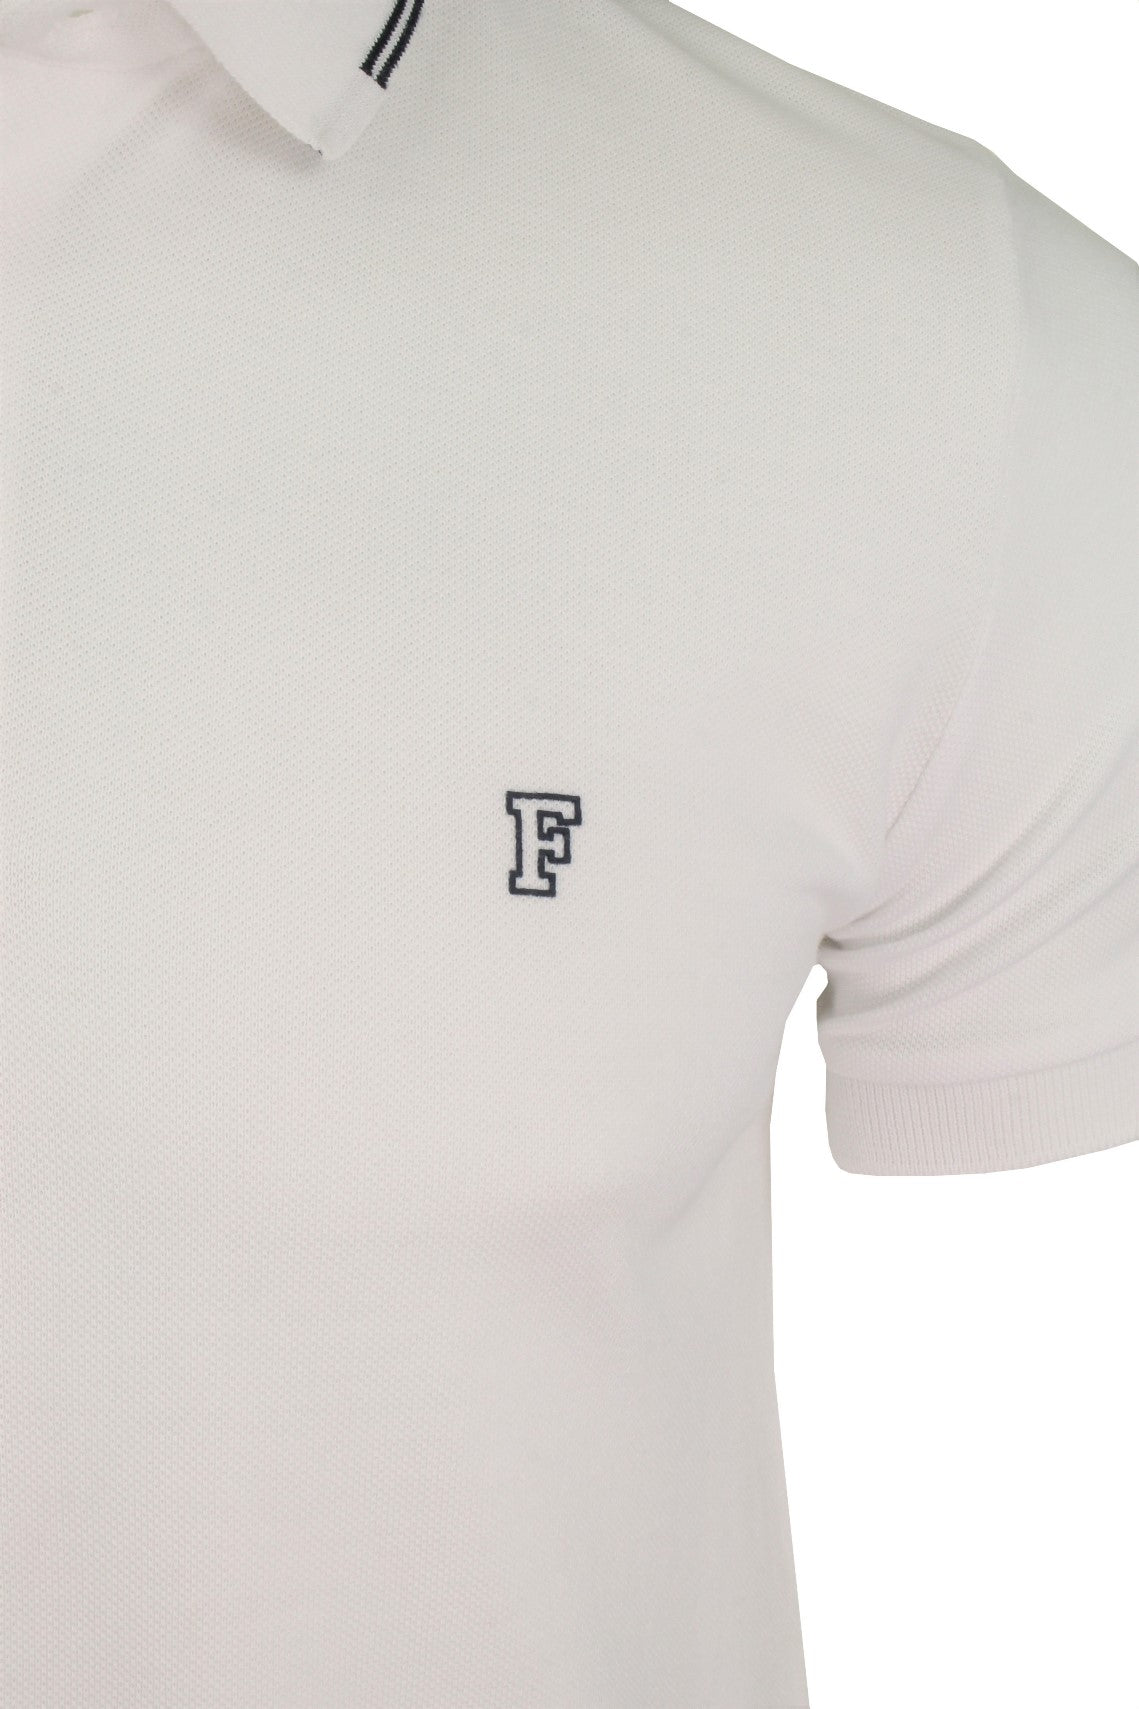 Mens Polo T-Shirt by FCUK/ French Connection Black Tipping-2